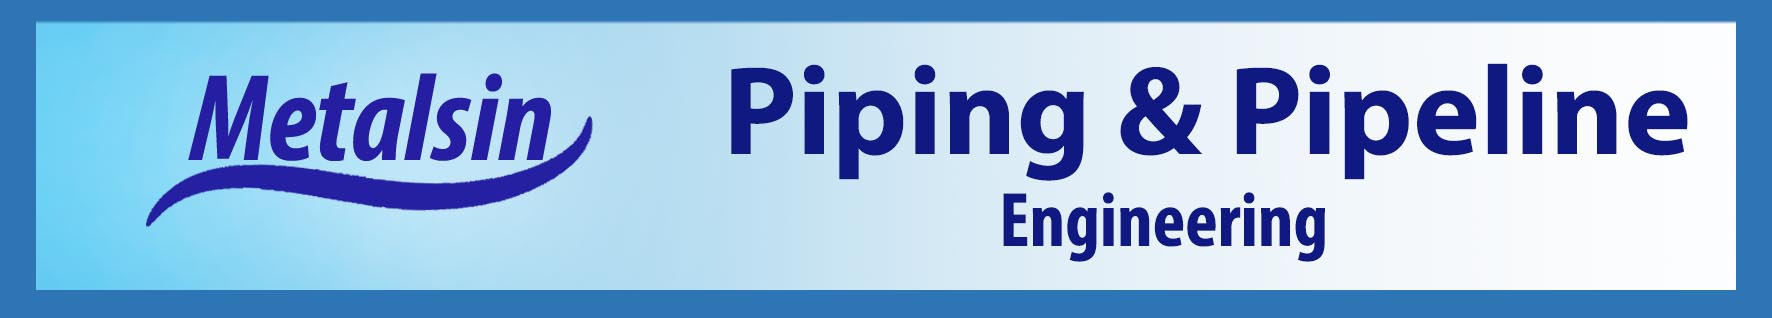 piping and pipeline engineering, piping material supply